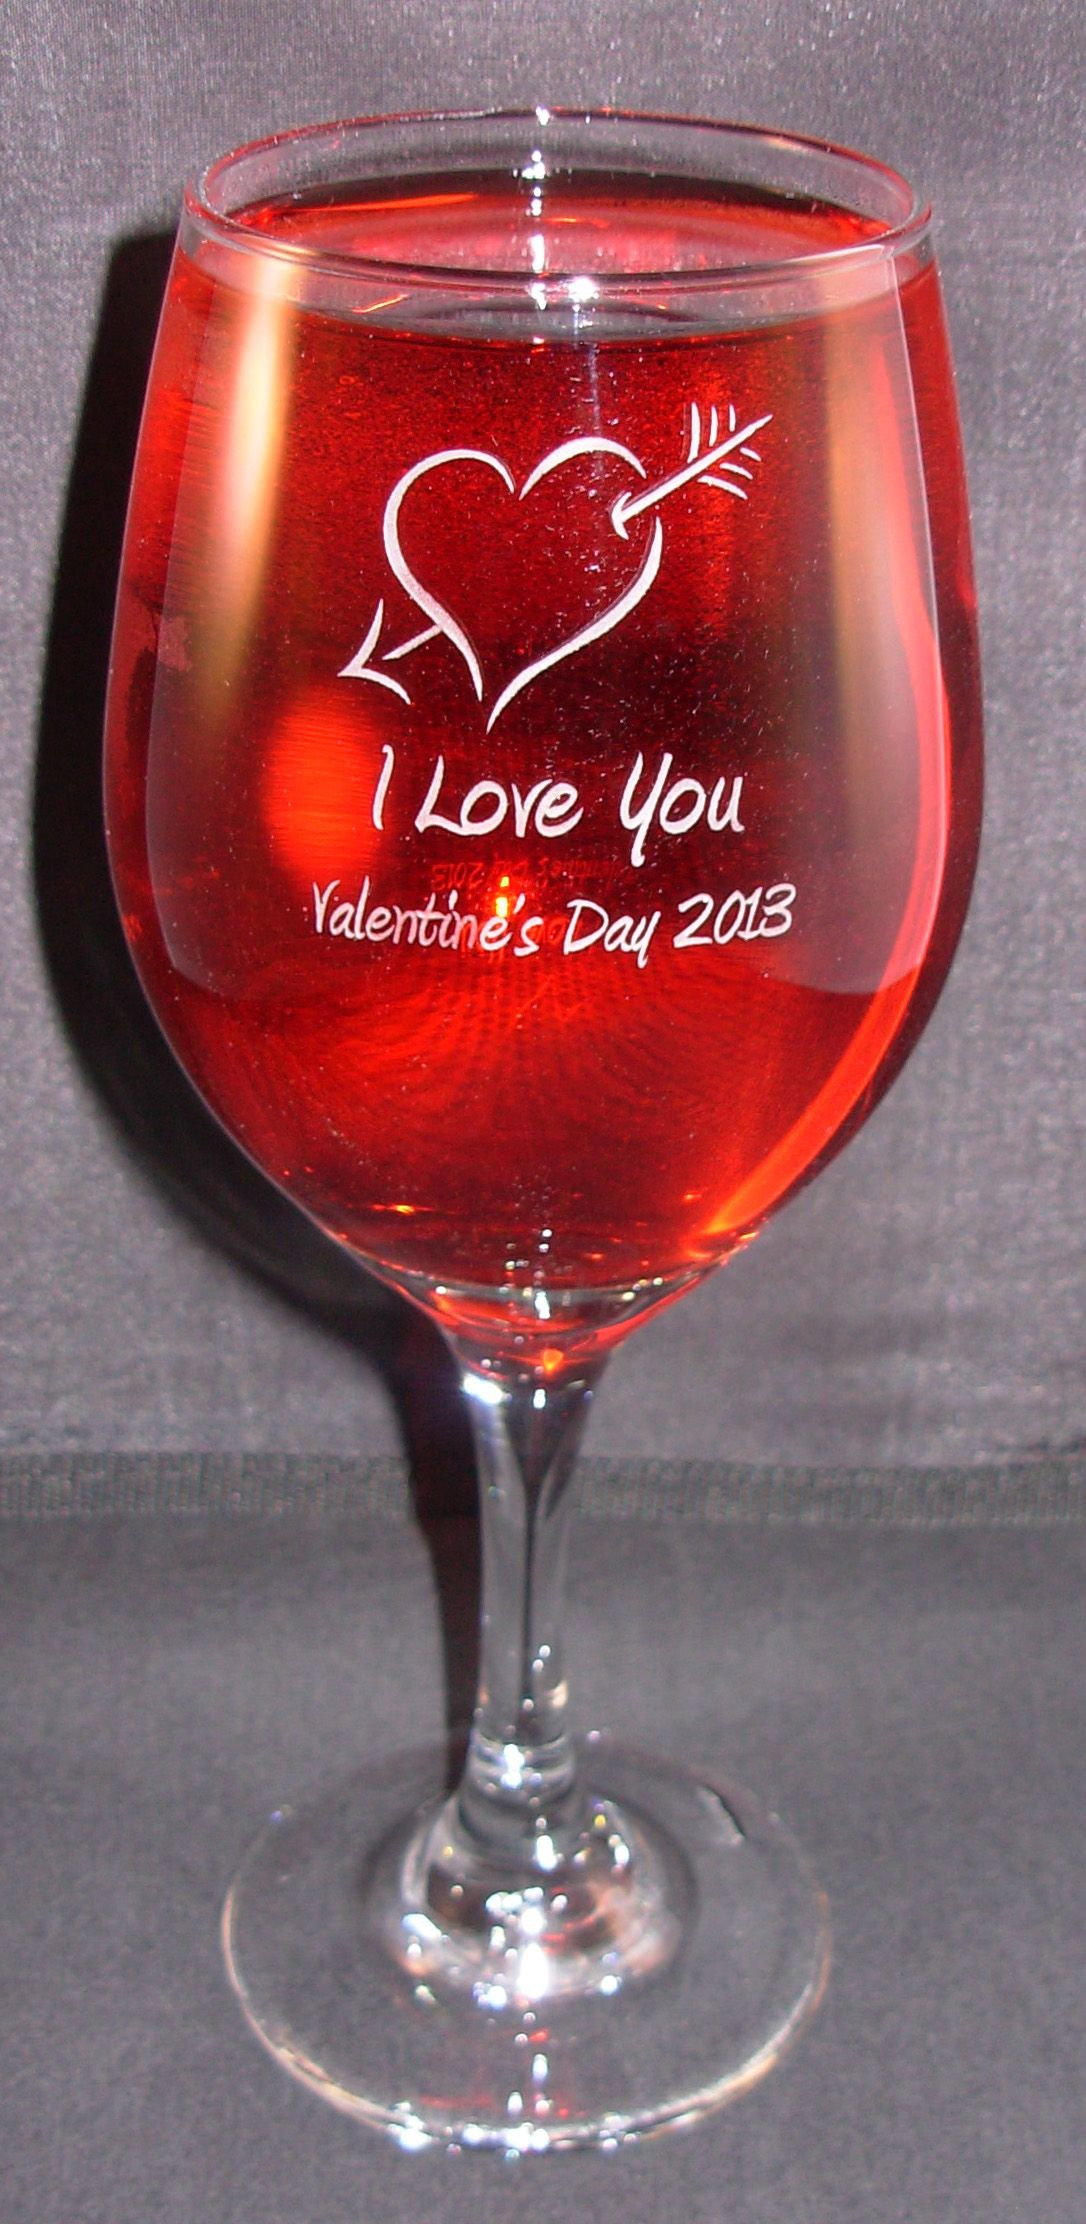 Valentine S Day Personalized Engraved Perception Wine Glass See It And Others Here Www Fantasygla Valentines Day Wine Valentines Beer Engraved Wine Glasses